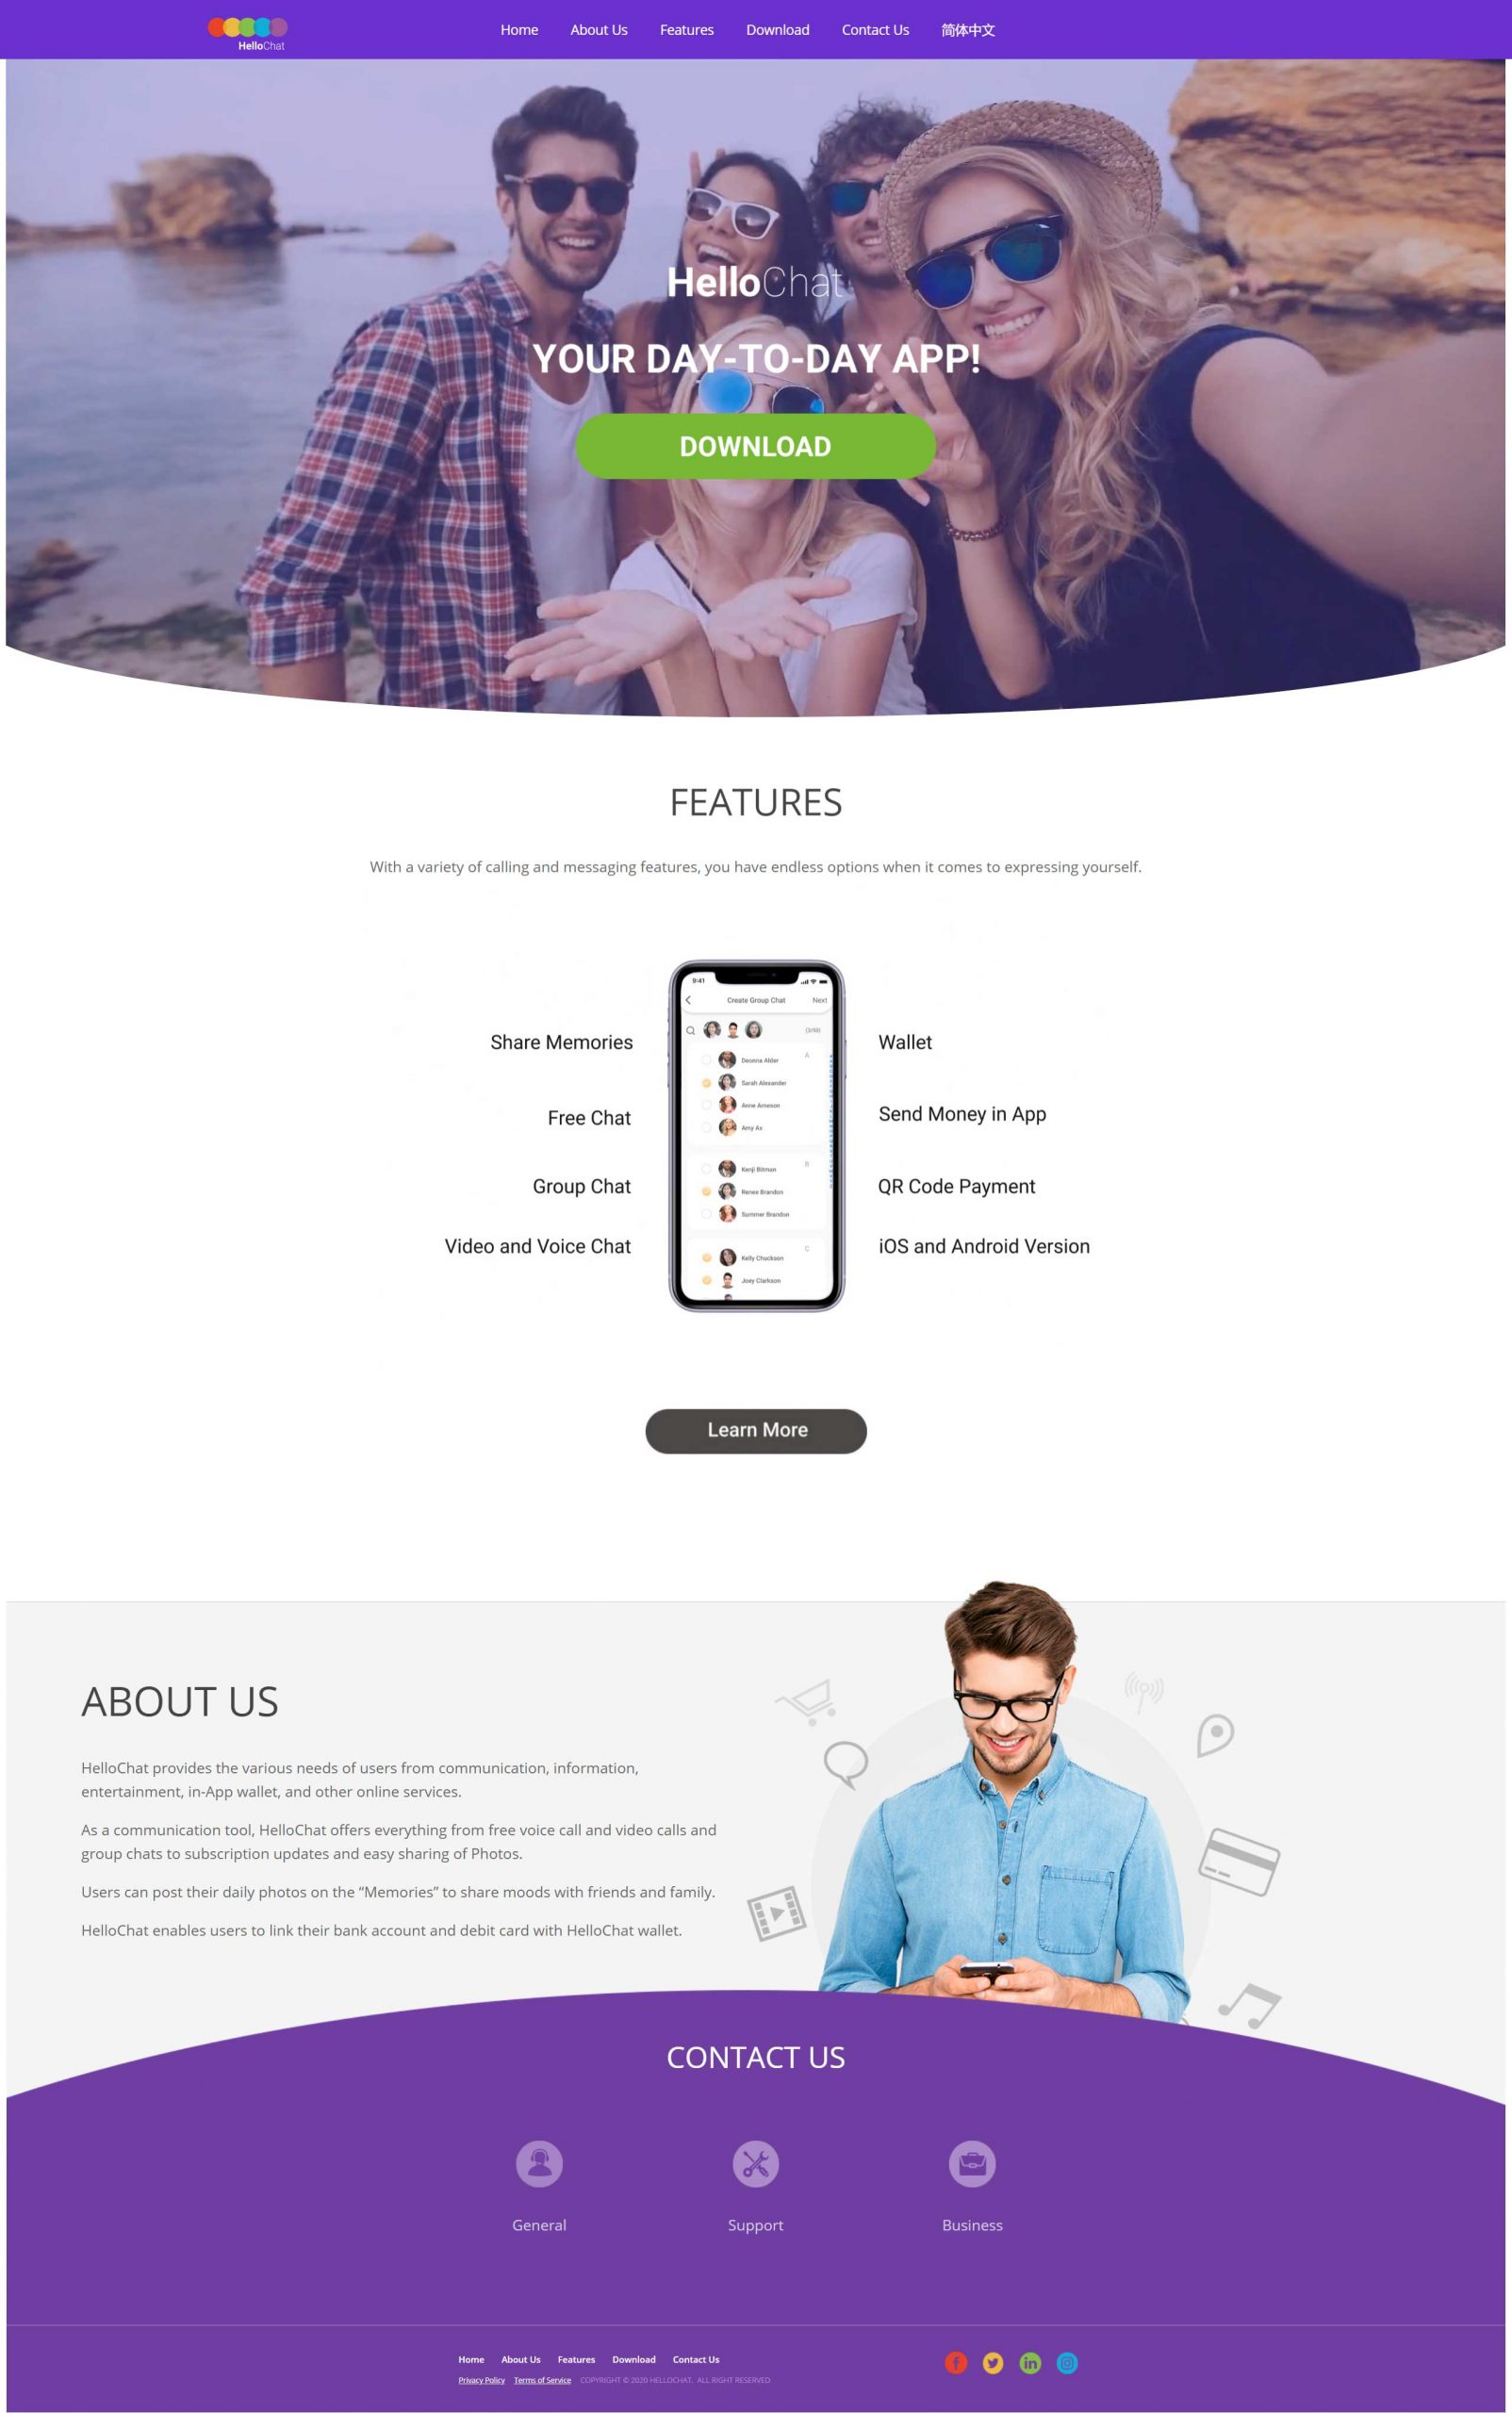 hellochat_home_page